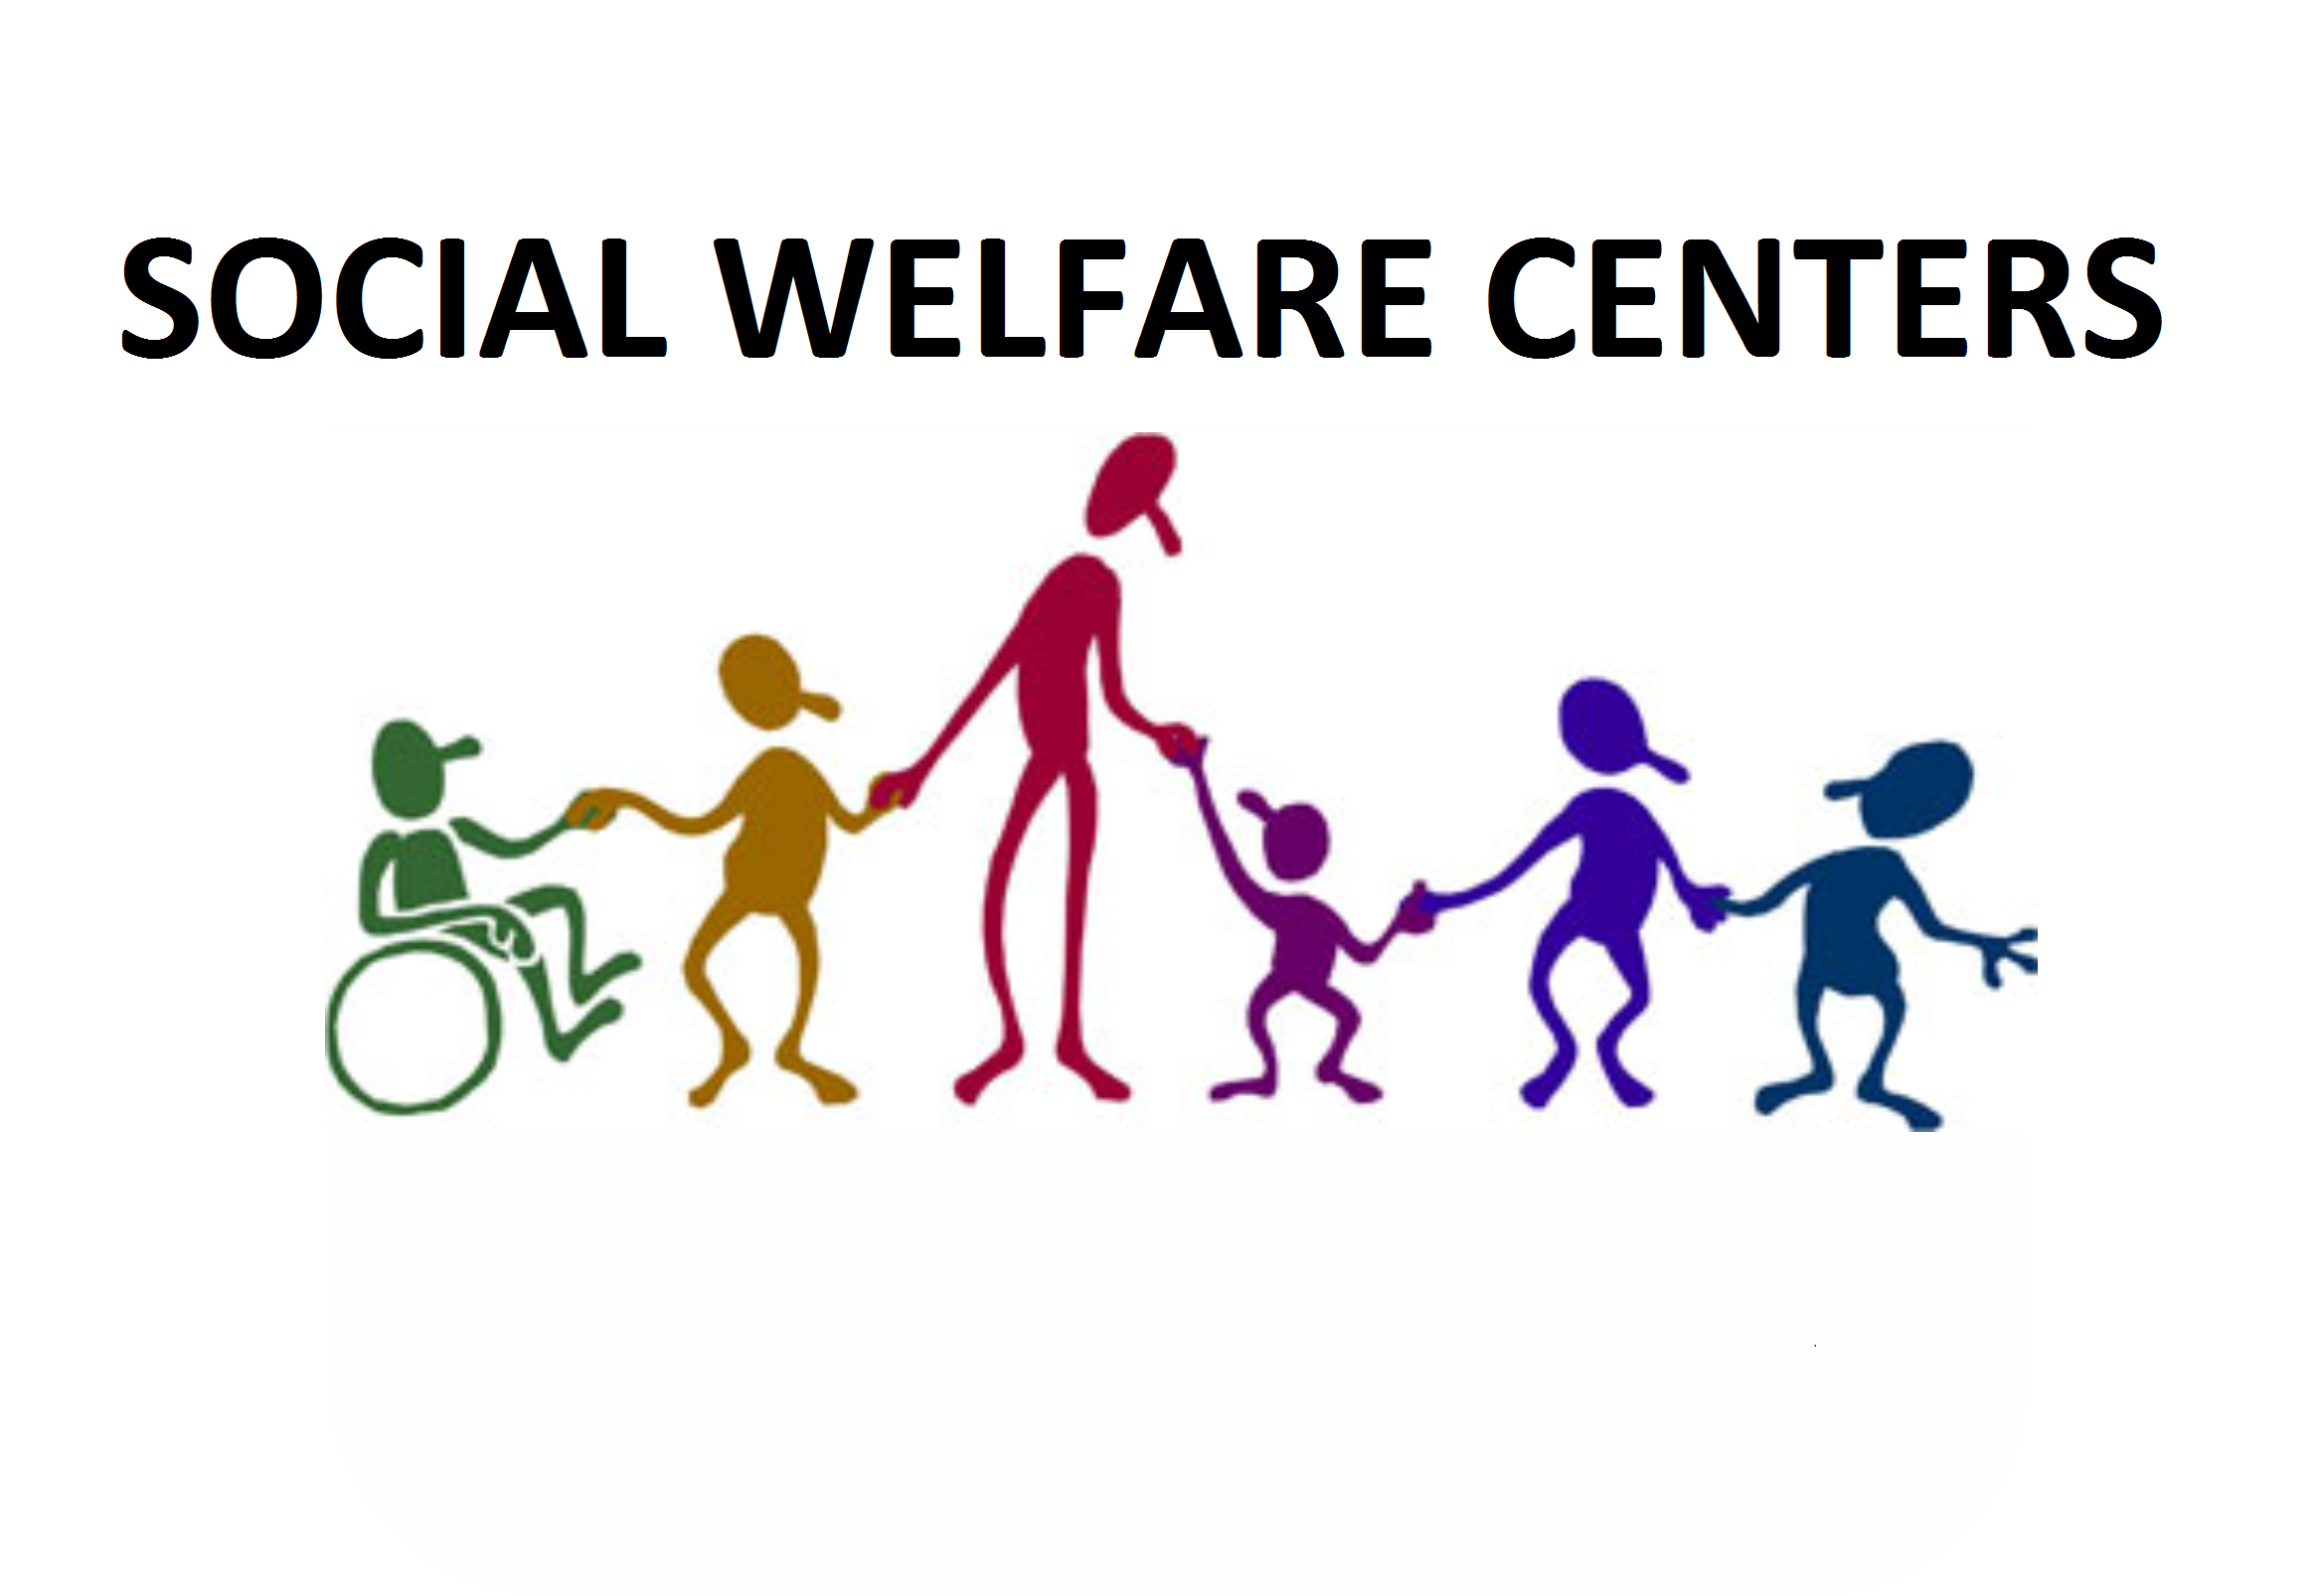 Social-welfare-centers.png